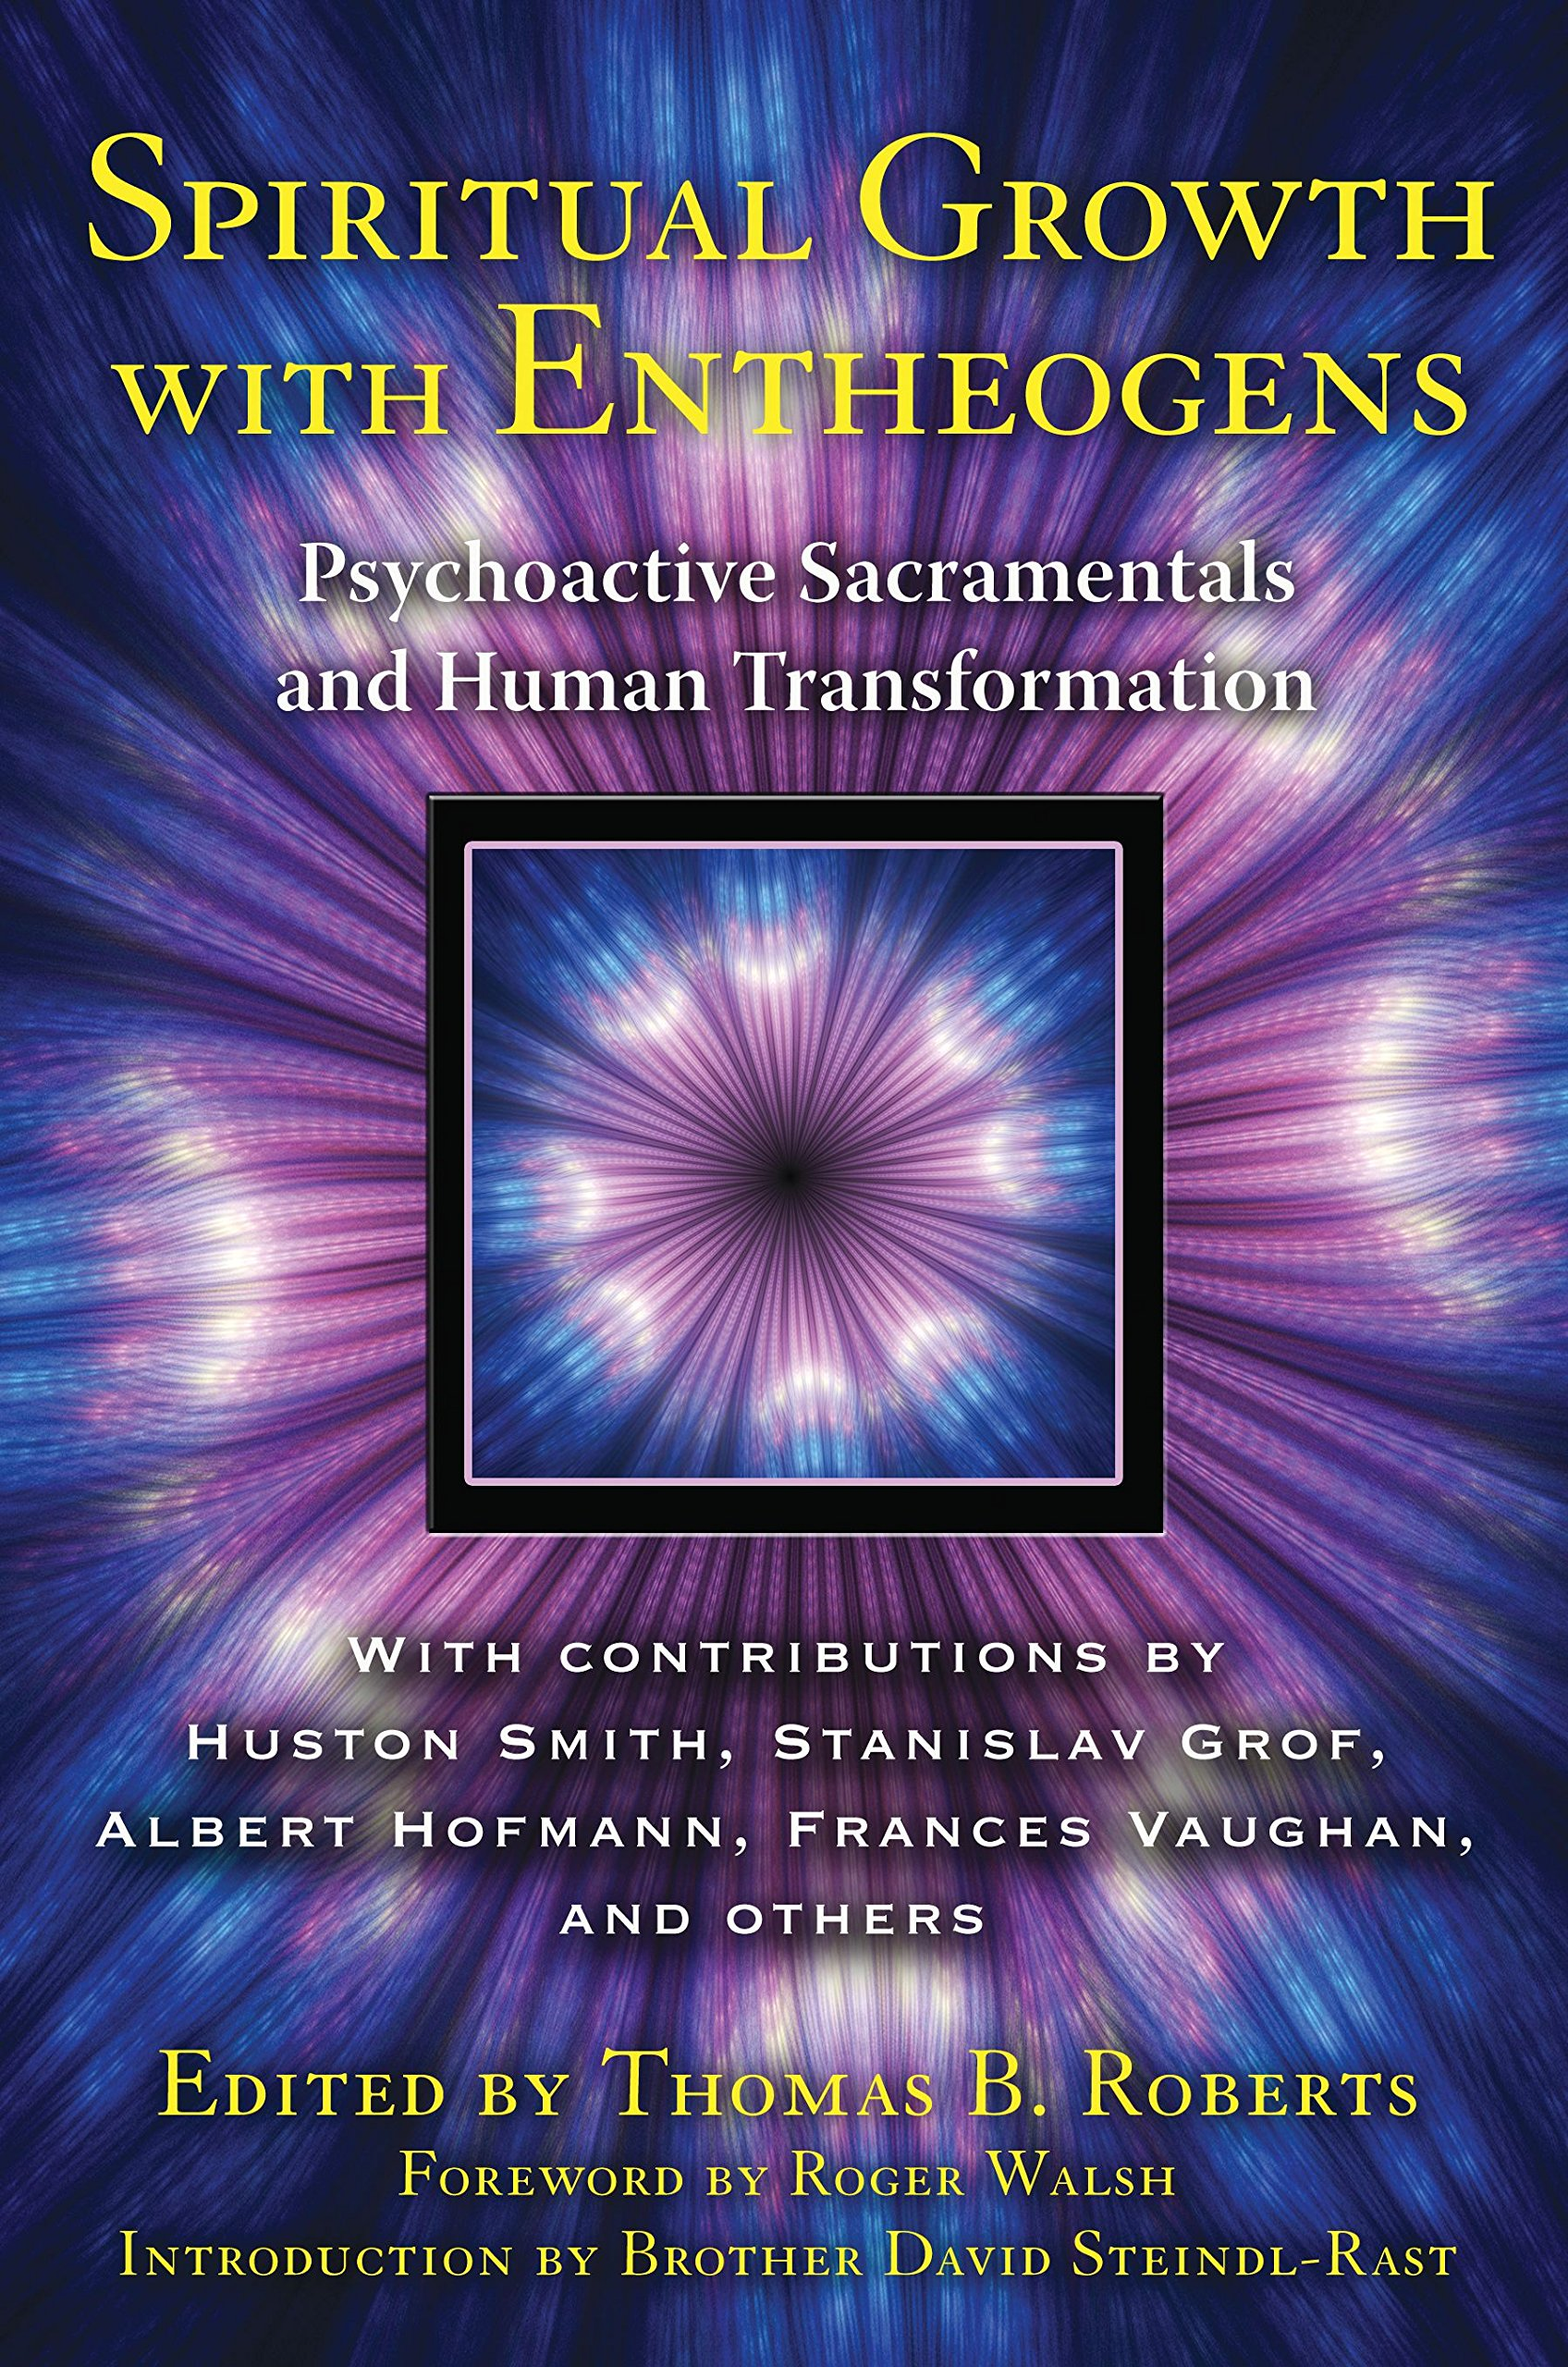 Amazon com: Spiritual Growth with Entheogens: Psychoactive